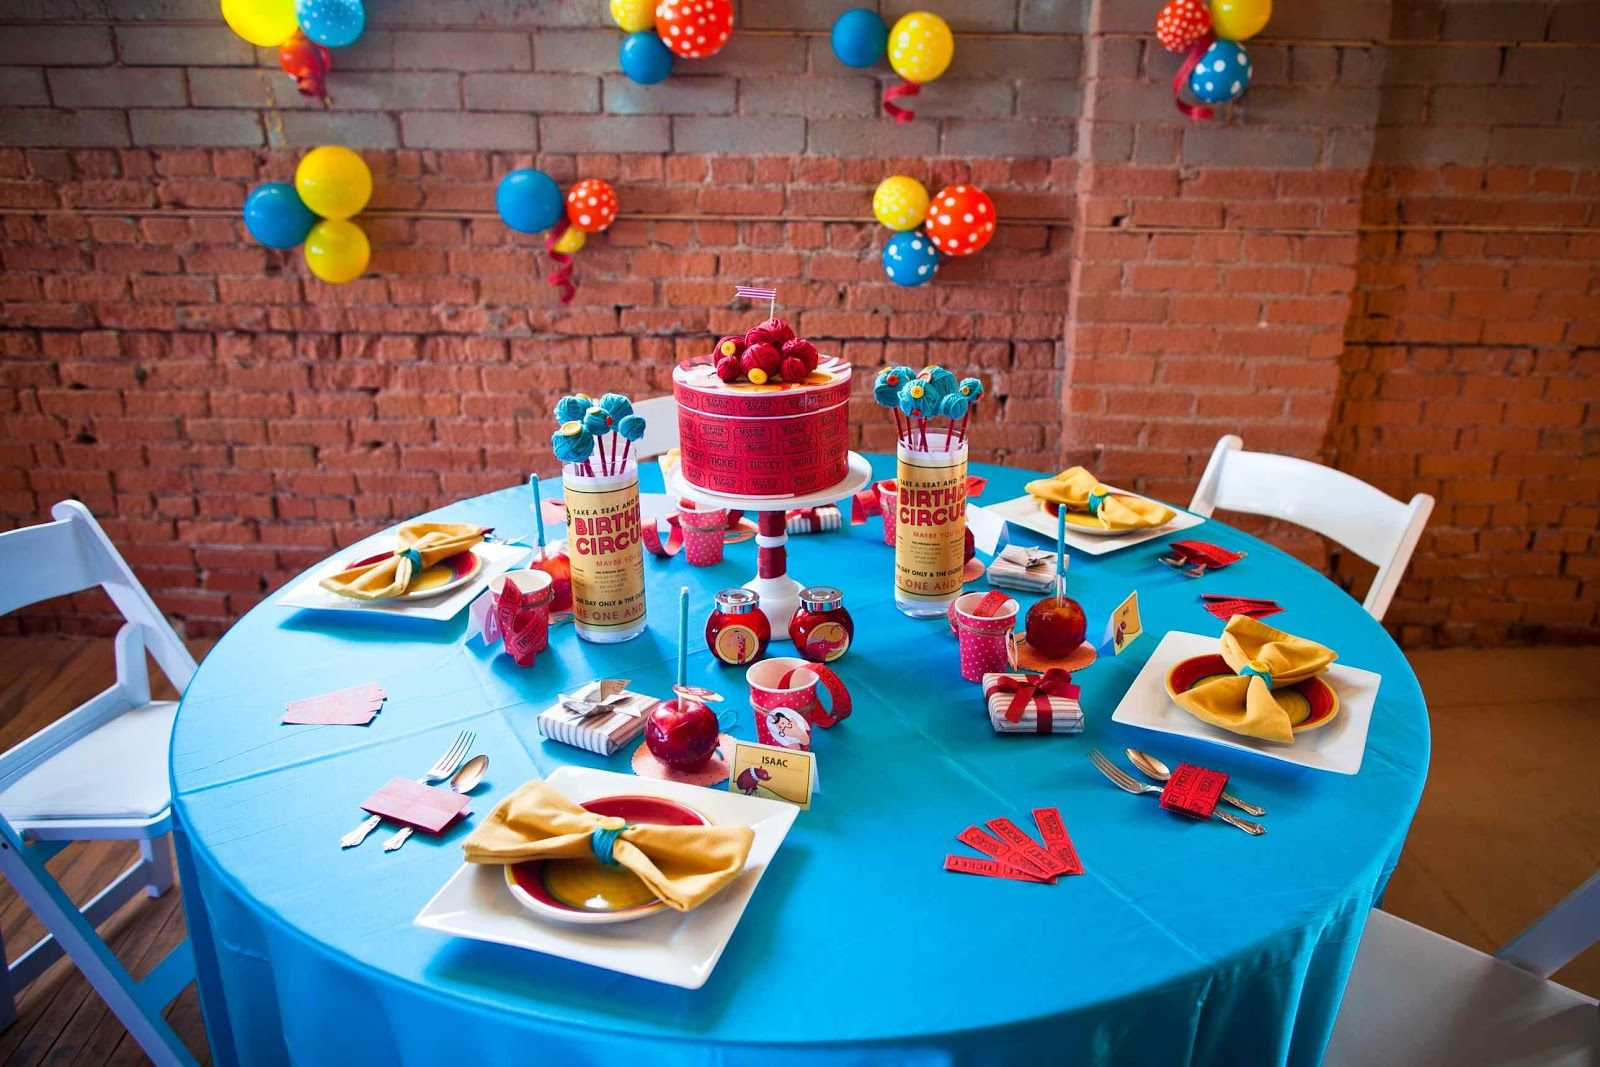 st birthday party ideas for boys the location photo shoot took place in  historic building from also rh pinterest